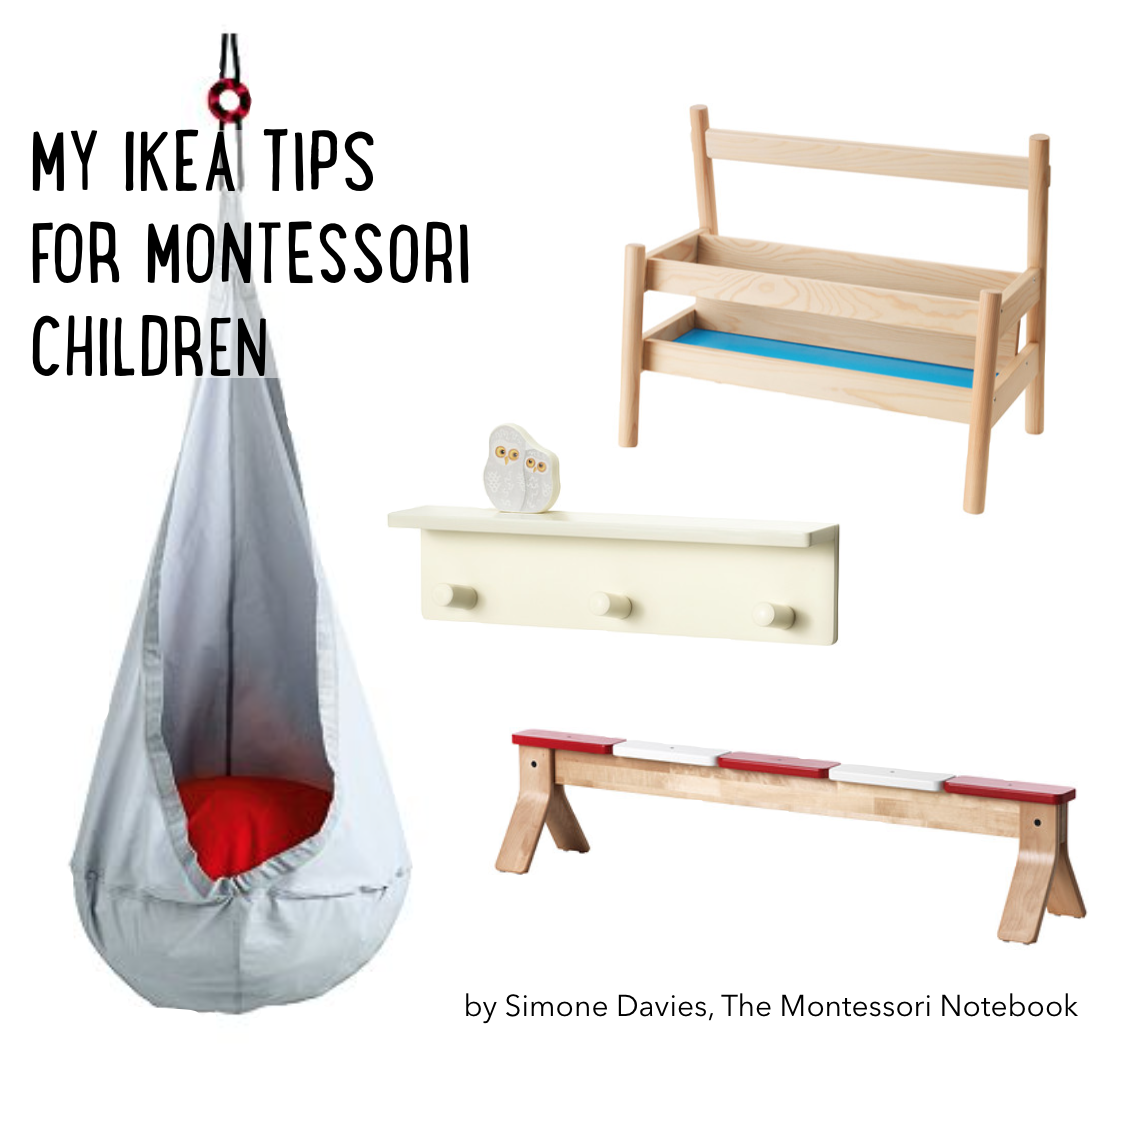 My top Ikea picks for Montessori children - The Montessori Notebook